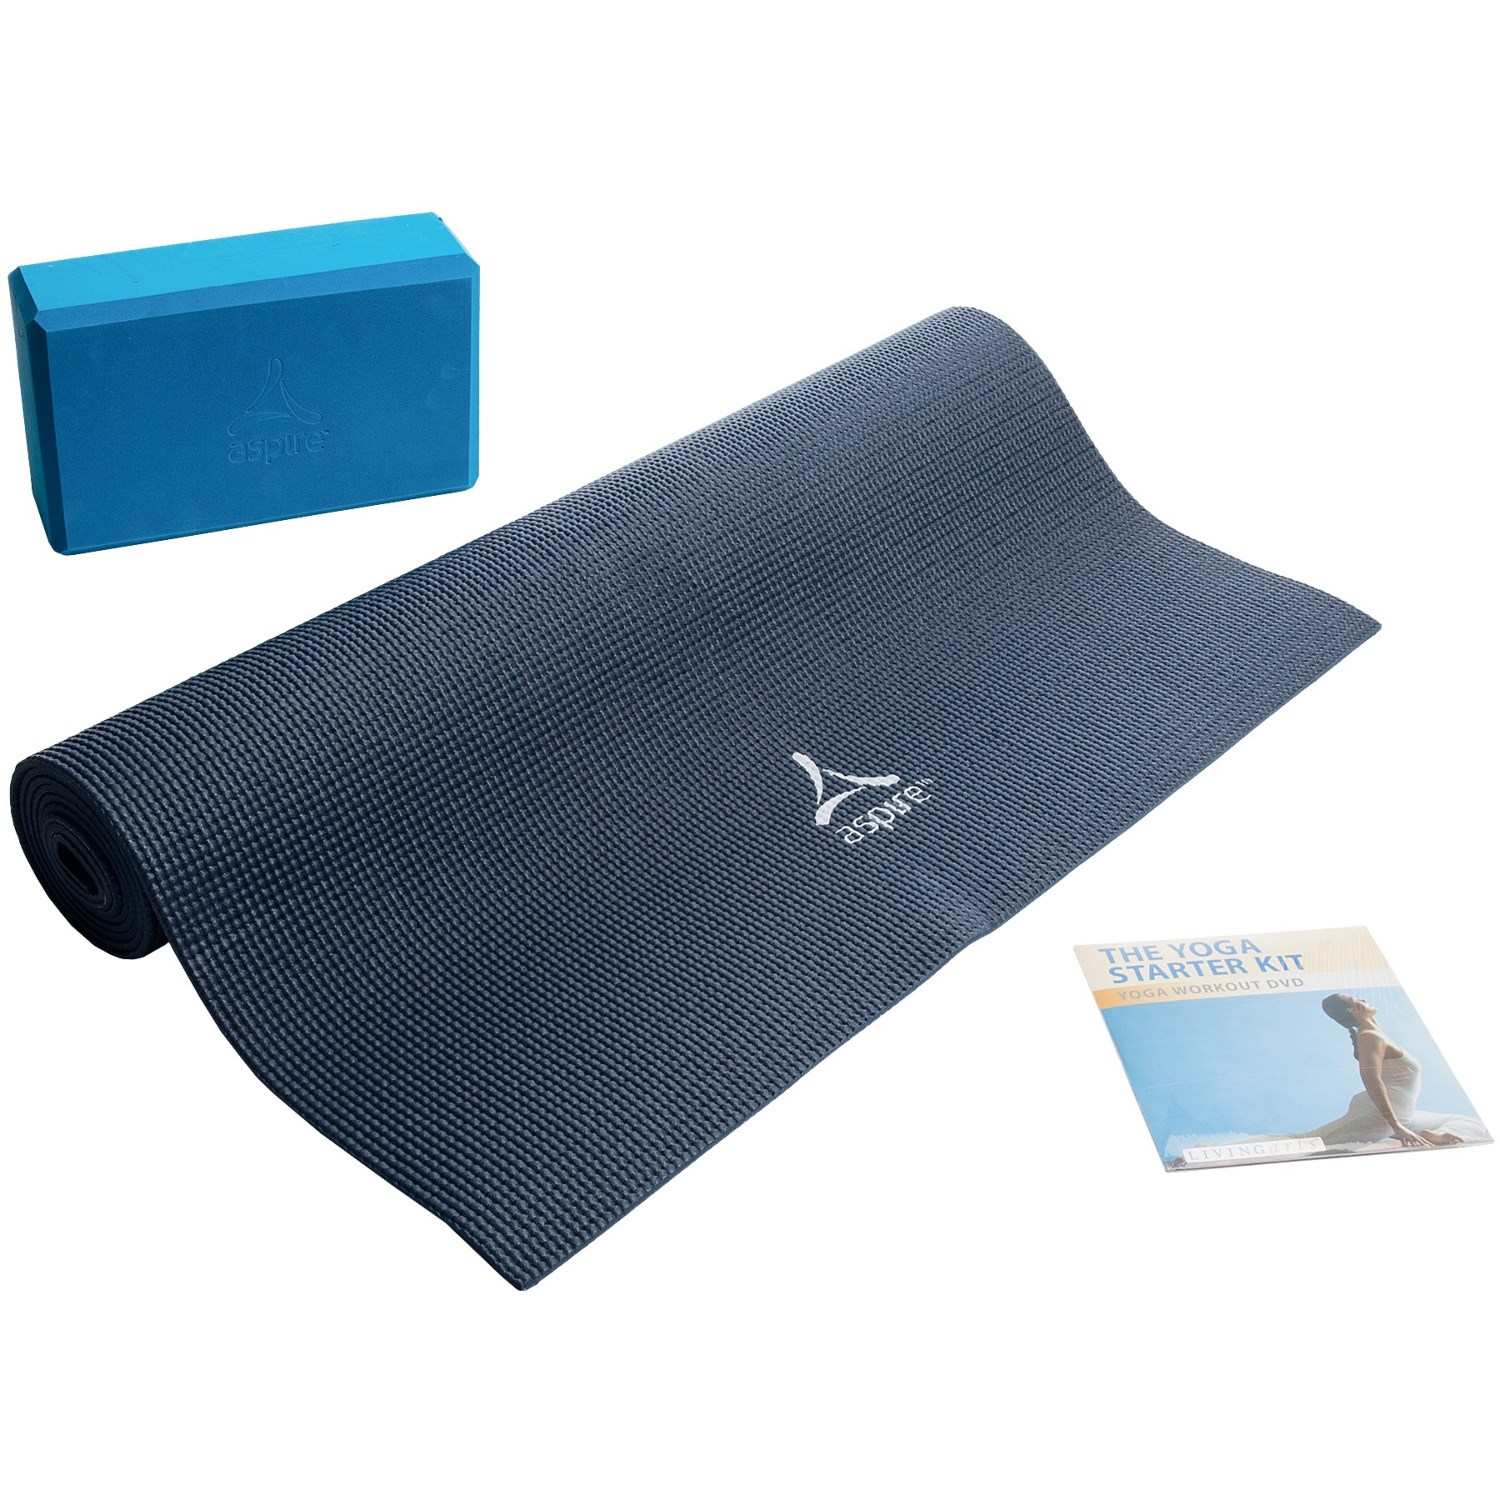 Gaiam Yoga Mat Reviews Gaiam Yoga Mat Reviews Gaiam Yoga